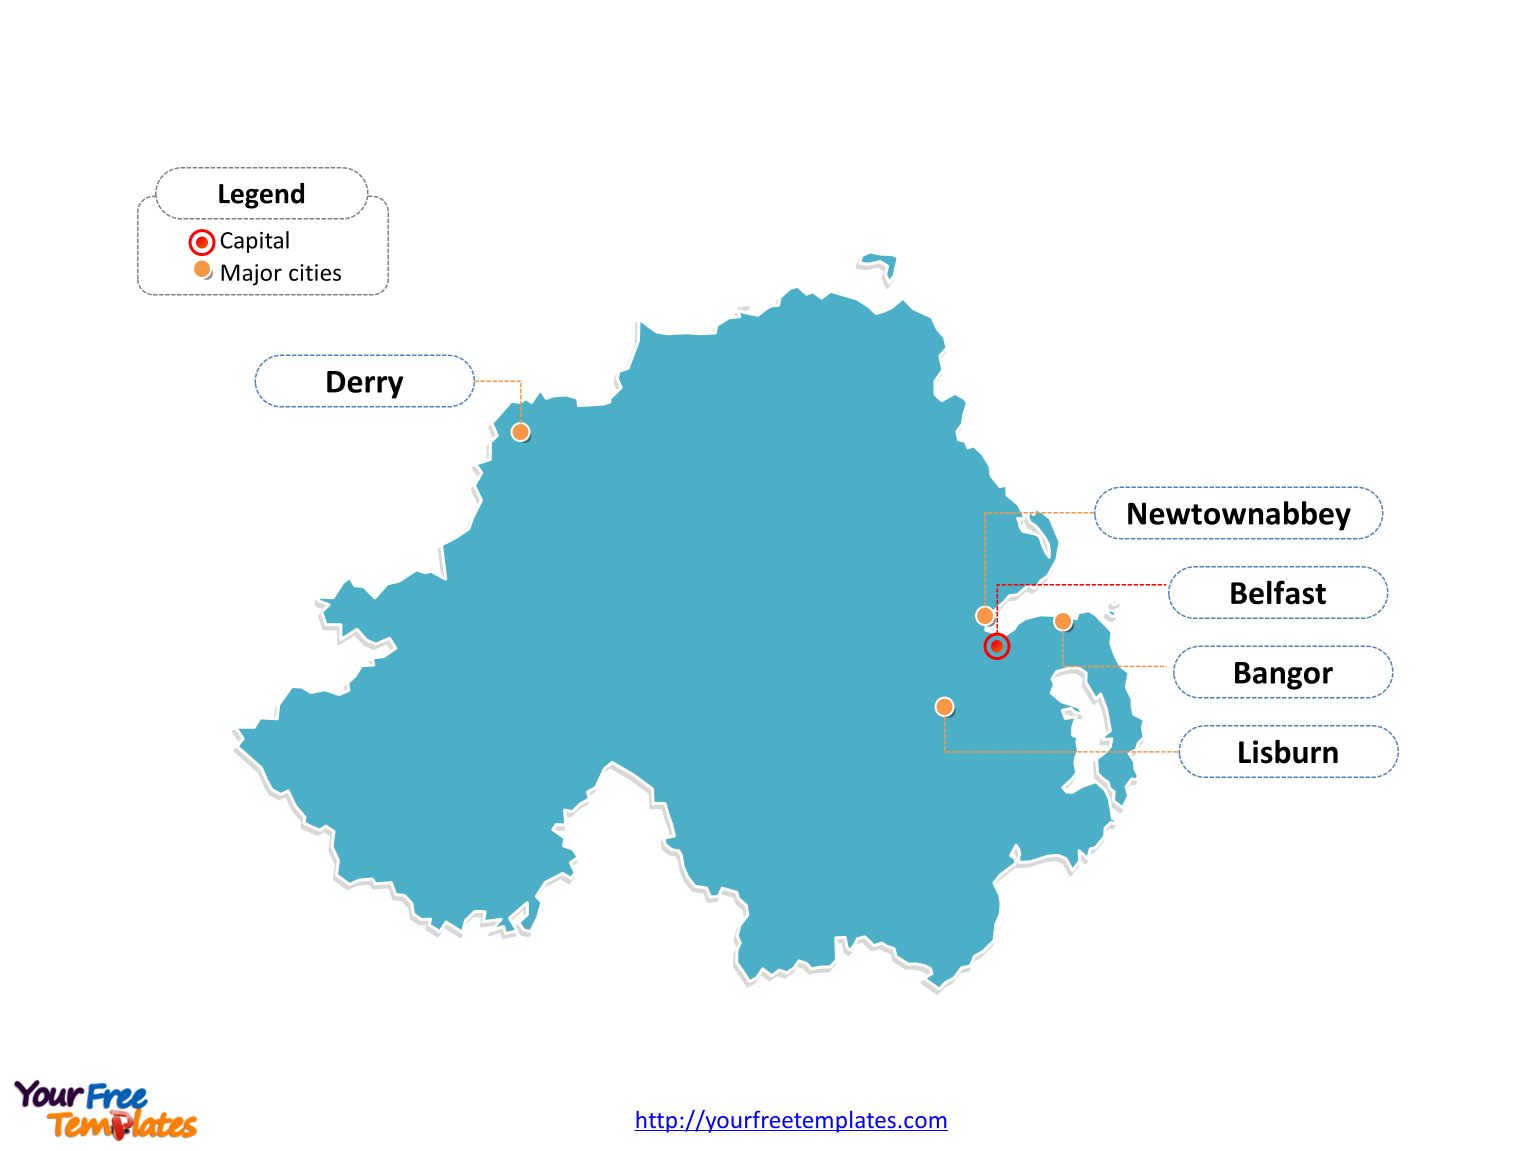 Map Of Ireland With Major Cities.Free Northern Ireland Editable Map Free Powerpoint Templates